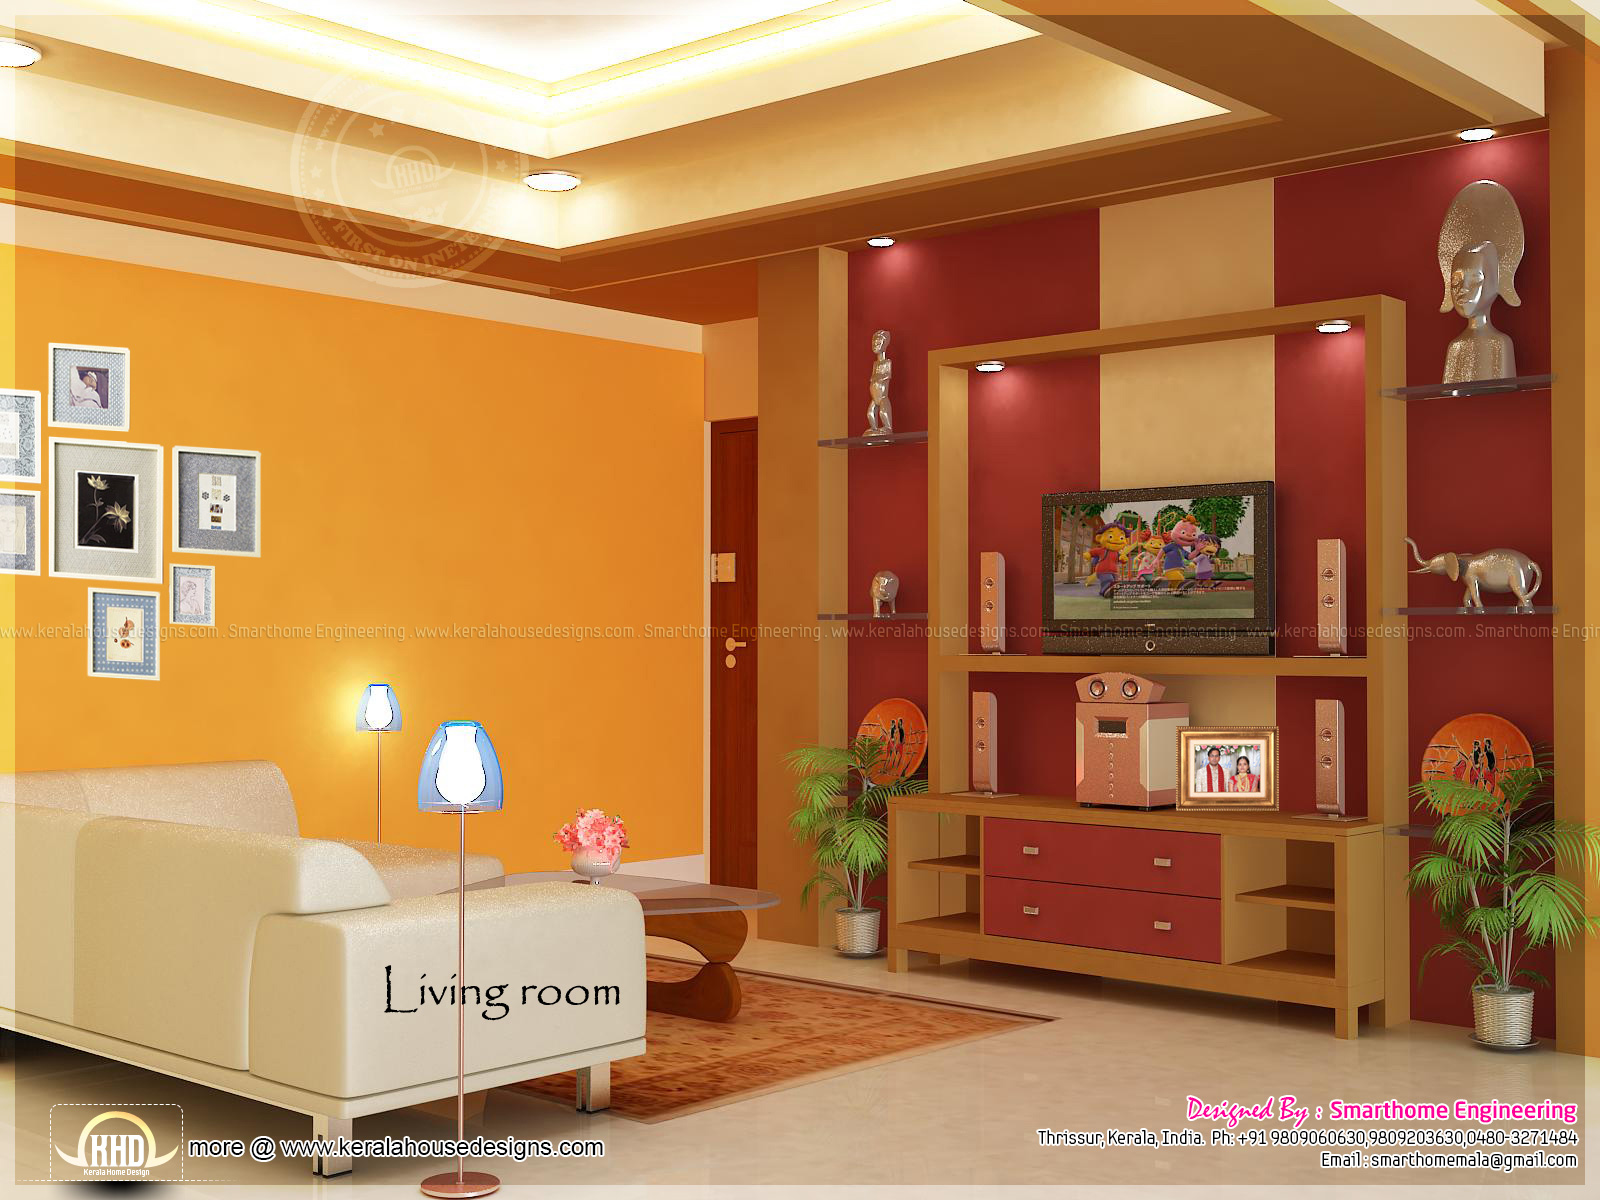 interior design kerala house middle class www